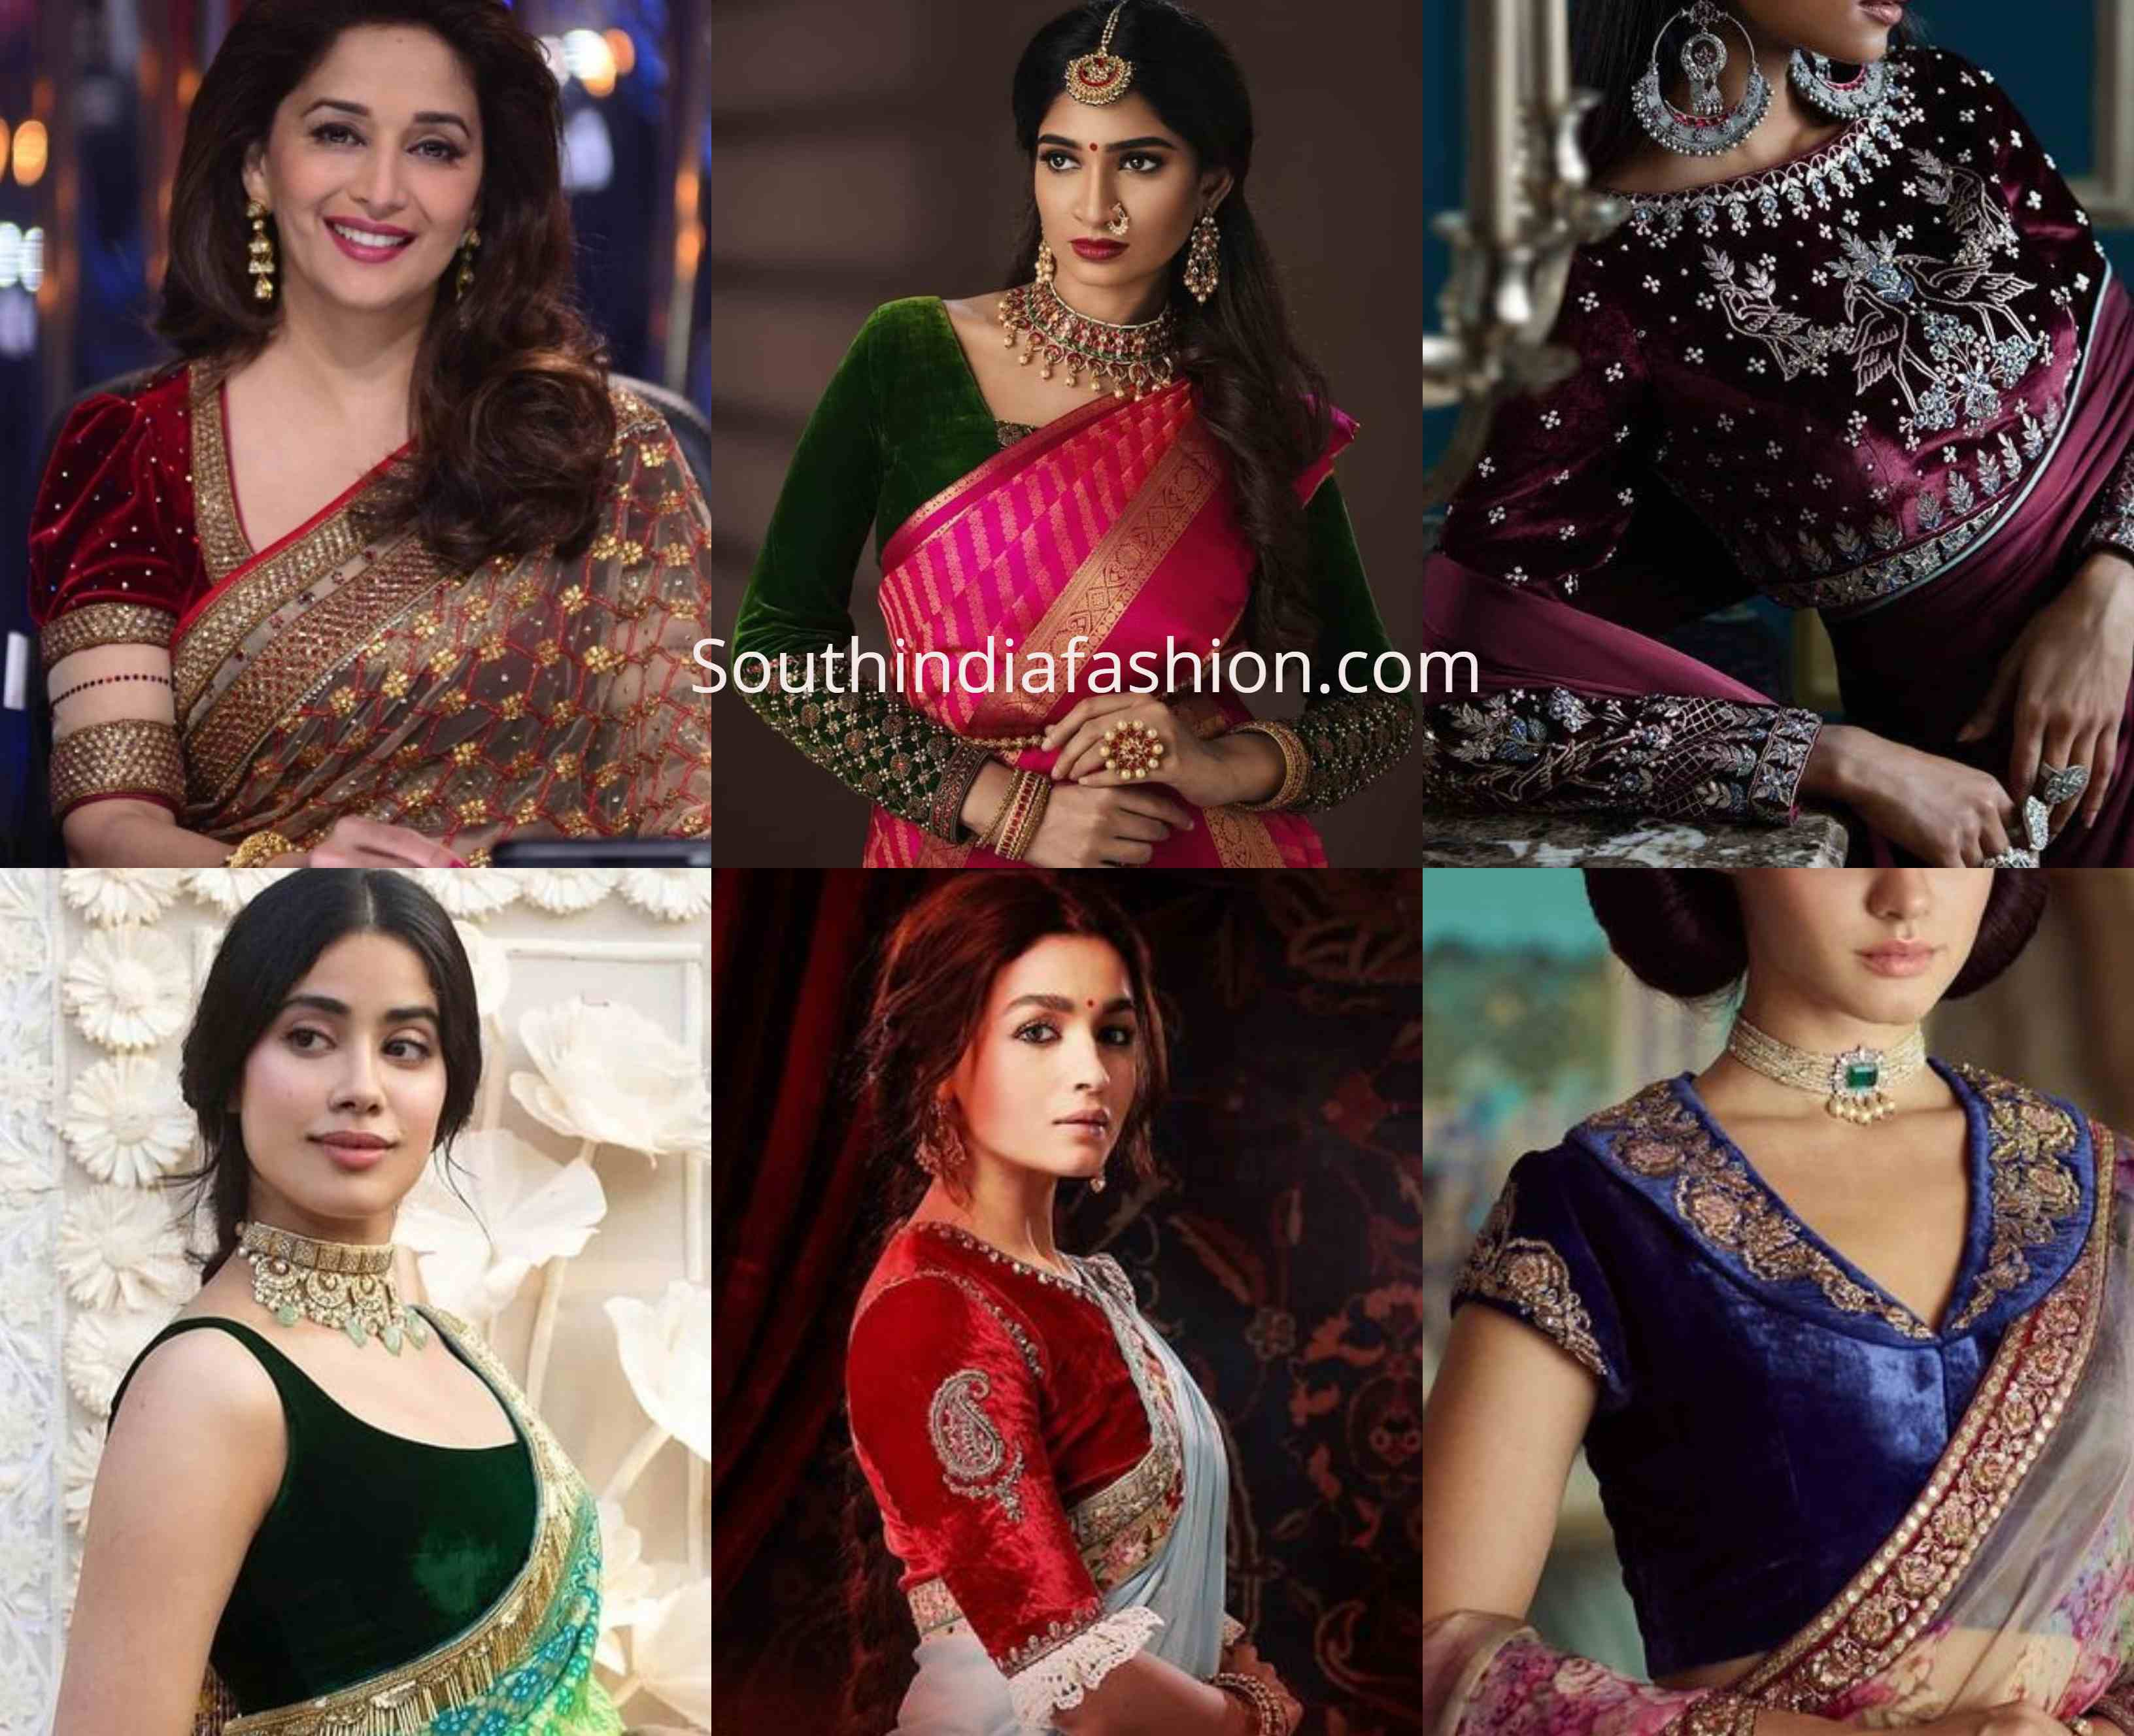 Add A Royal Touch To Your Sarees With Velvet Blouses